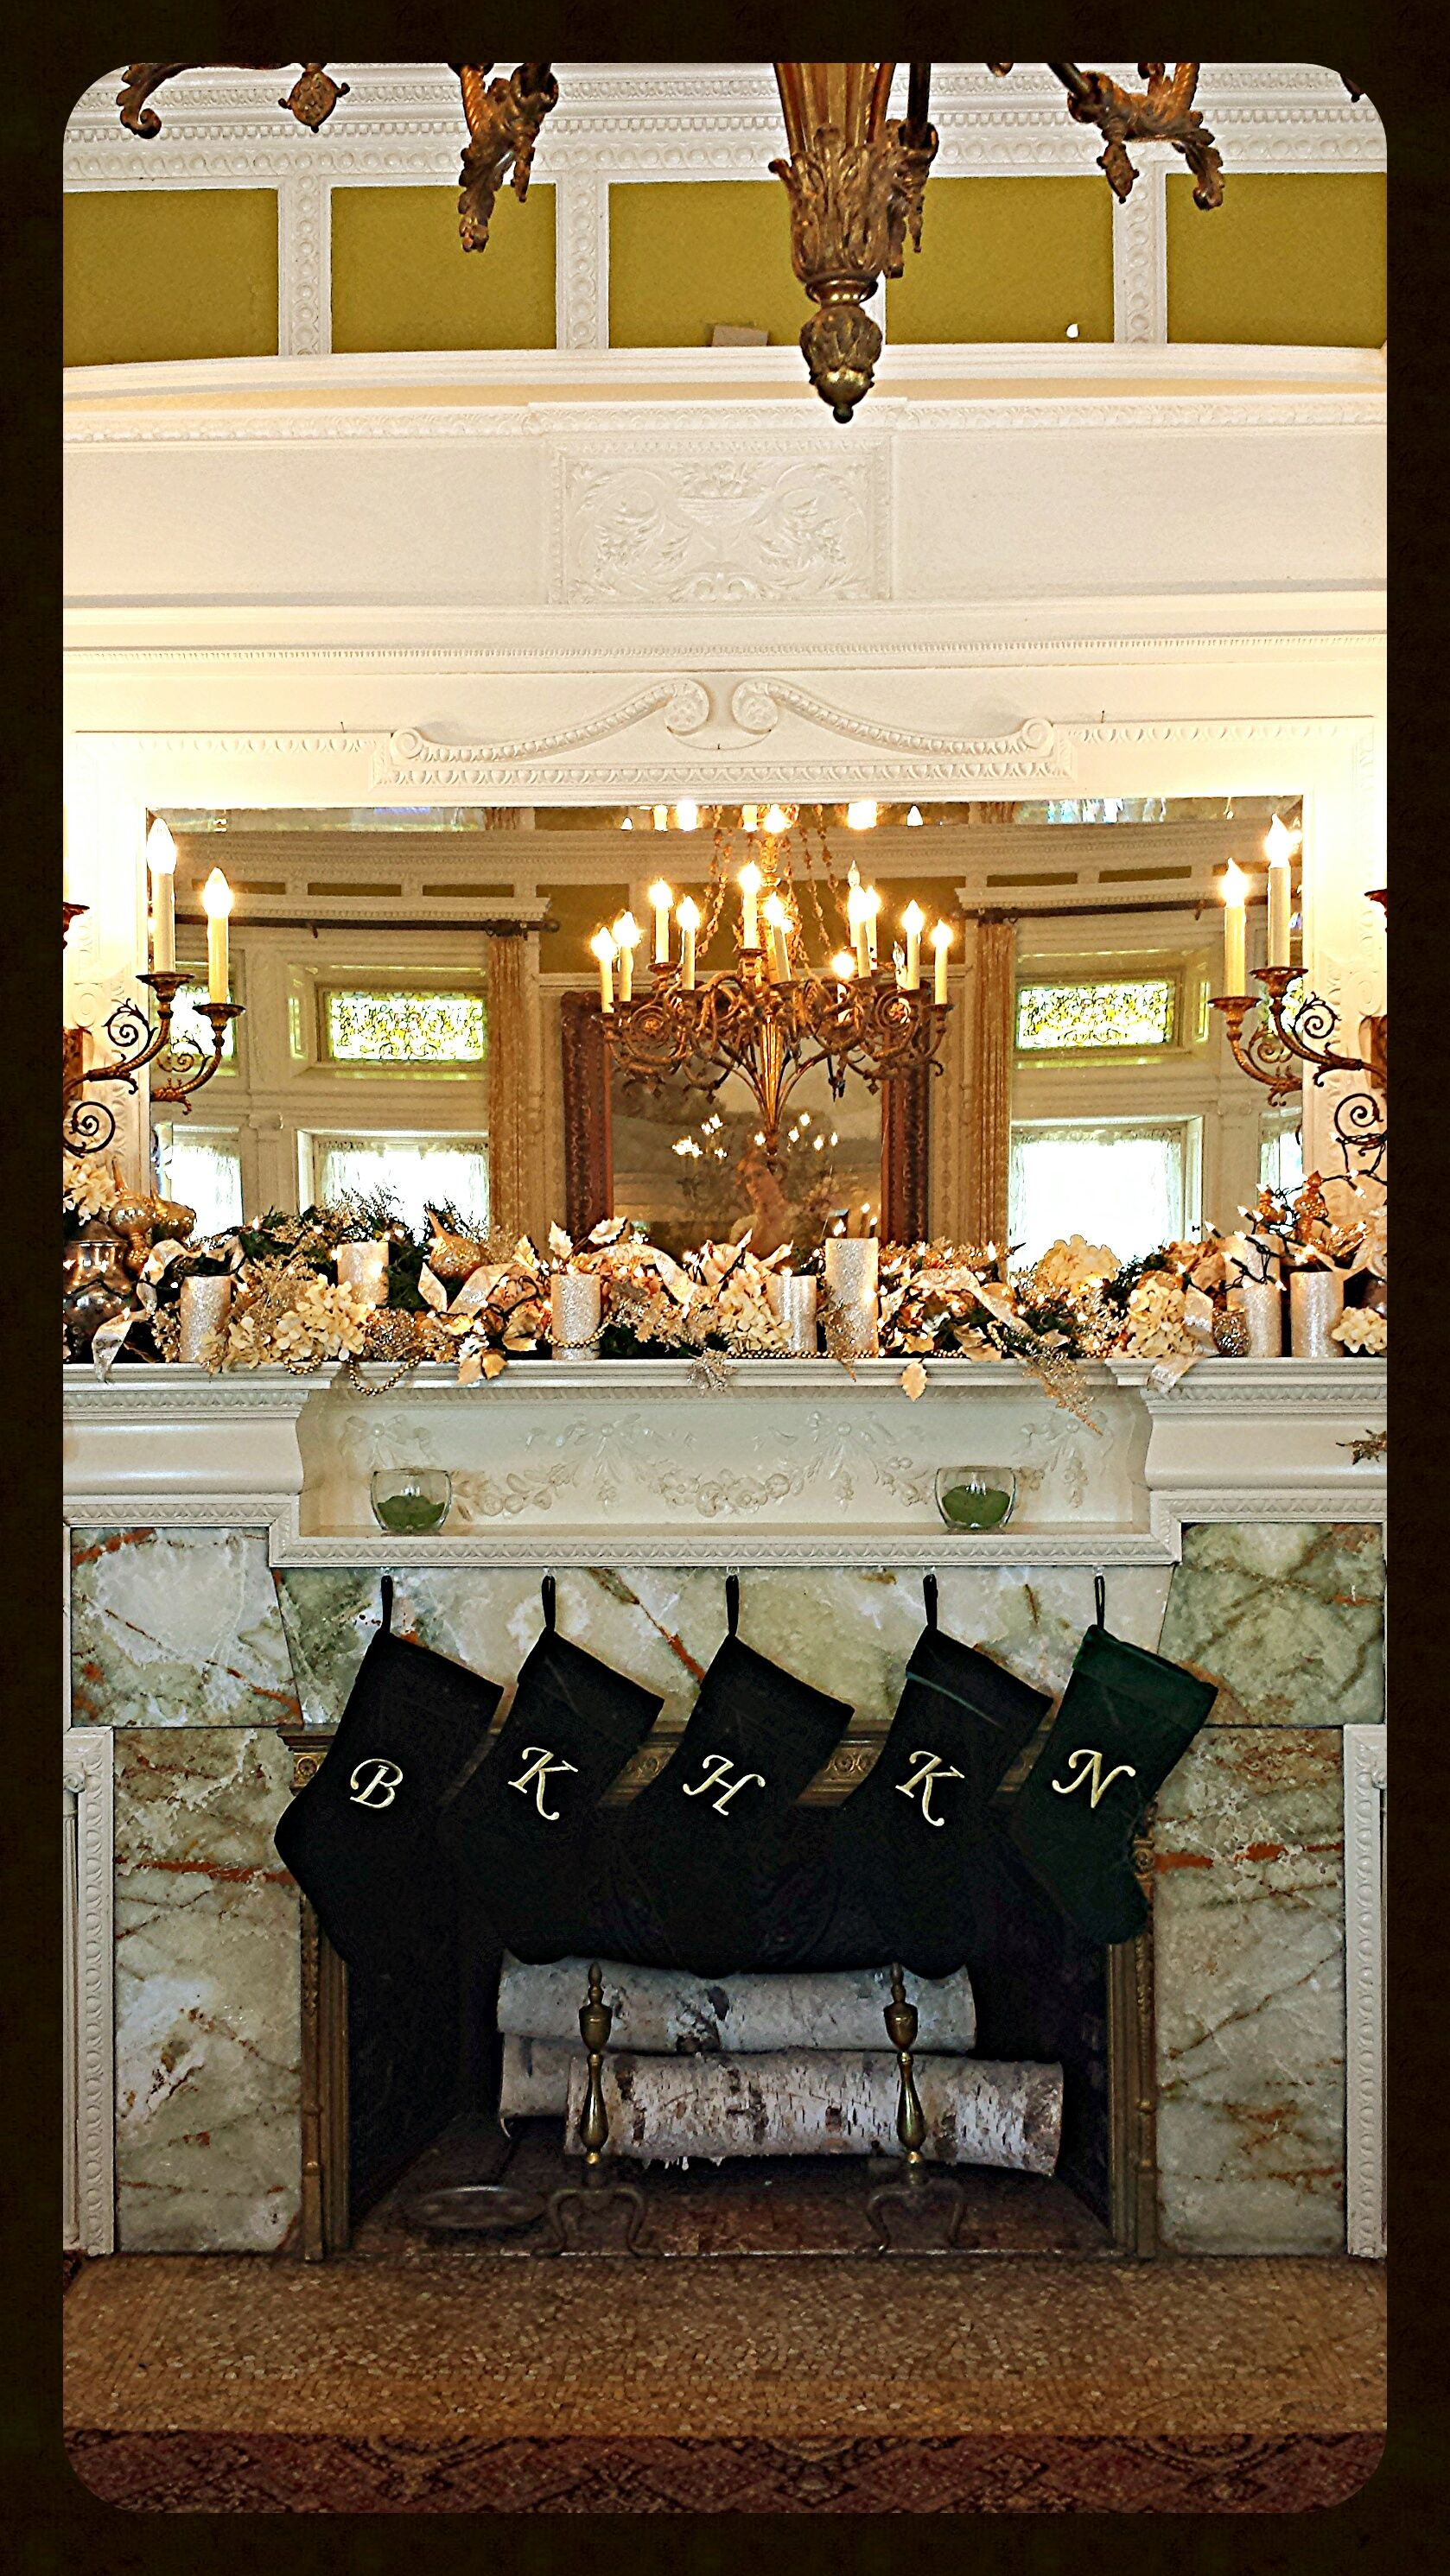 Holiday Cheer within the elegant Drawing Room at Tippecanoe Place Restaurant in downtown South Bend, IN